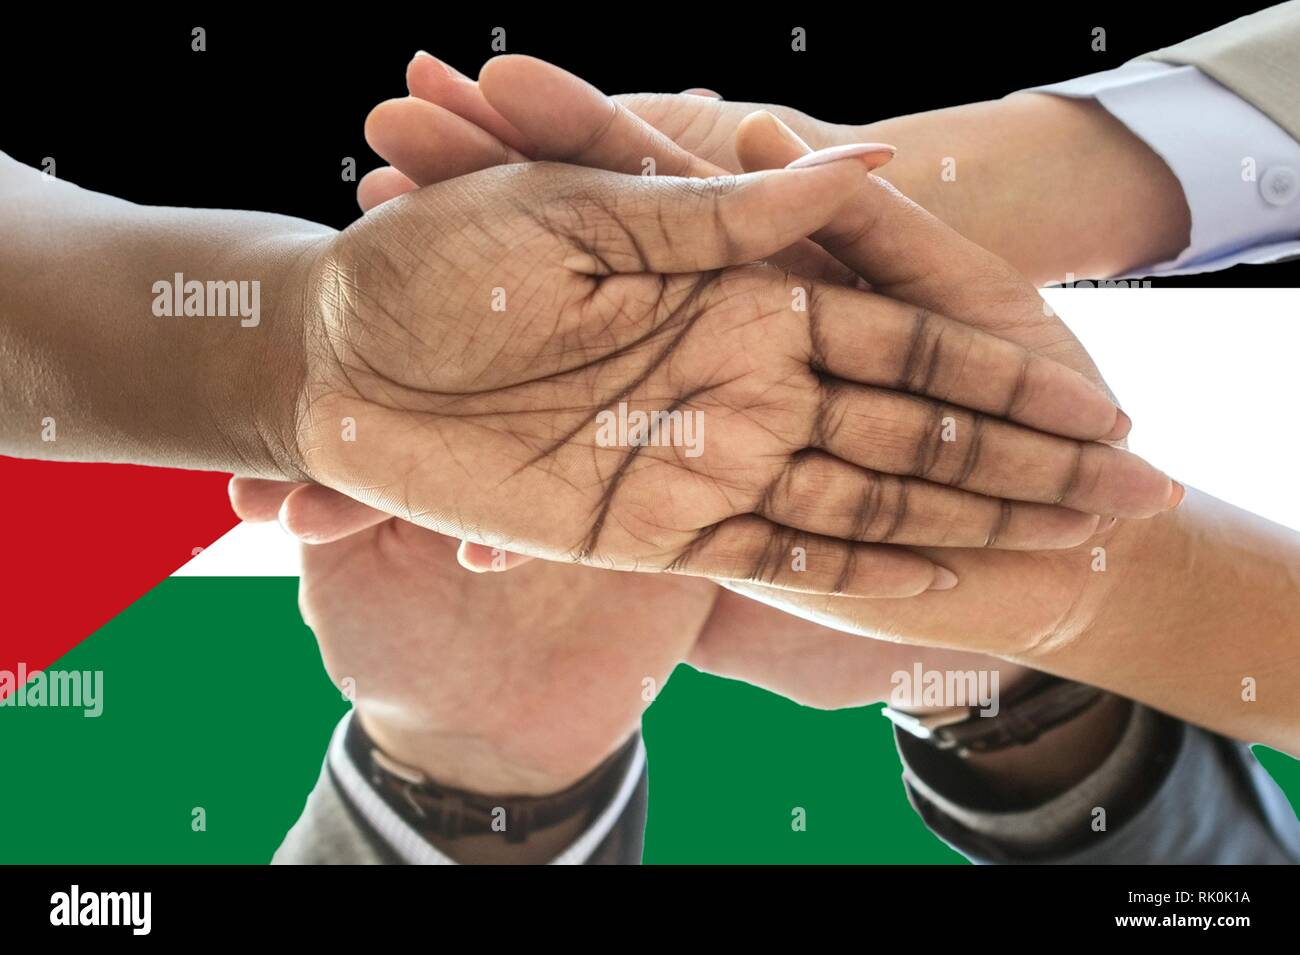 Sahrawi Arab Democratic Republic flag, intergration of a multicultural group of young people - Stock Image